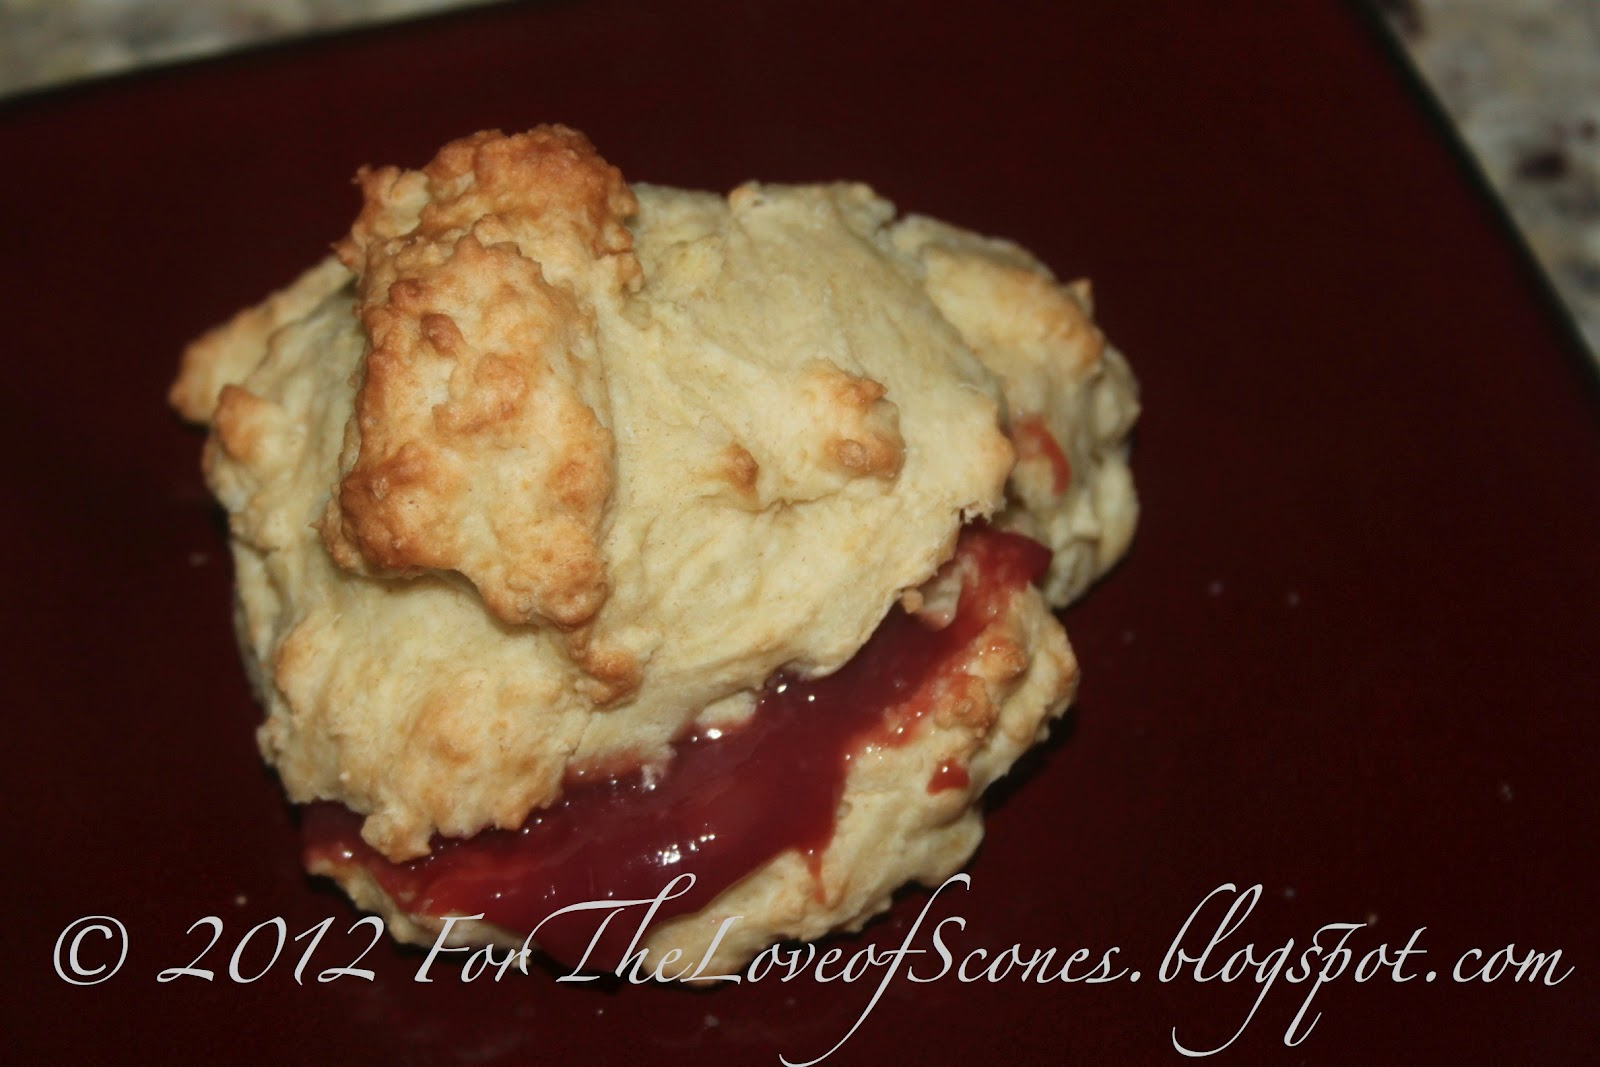 For the Love of Scones!: April 2012